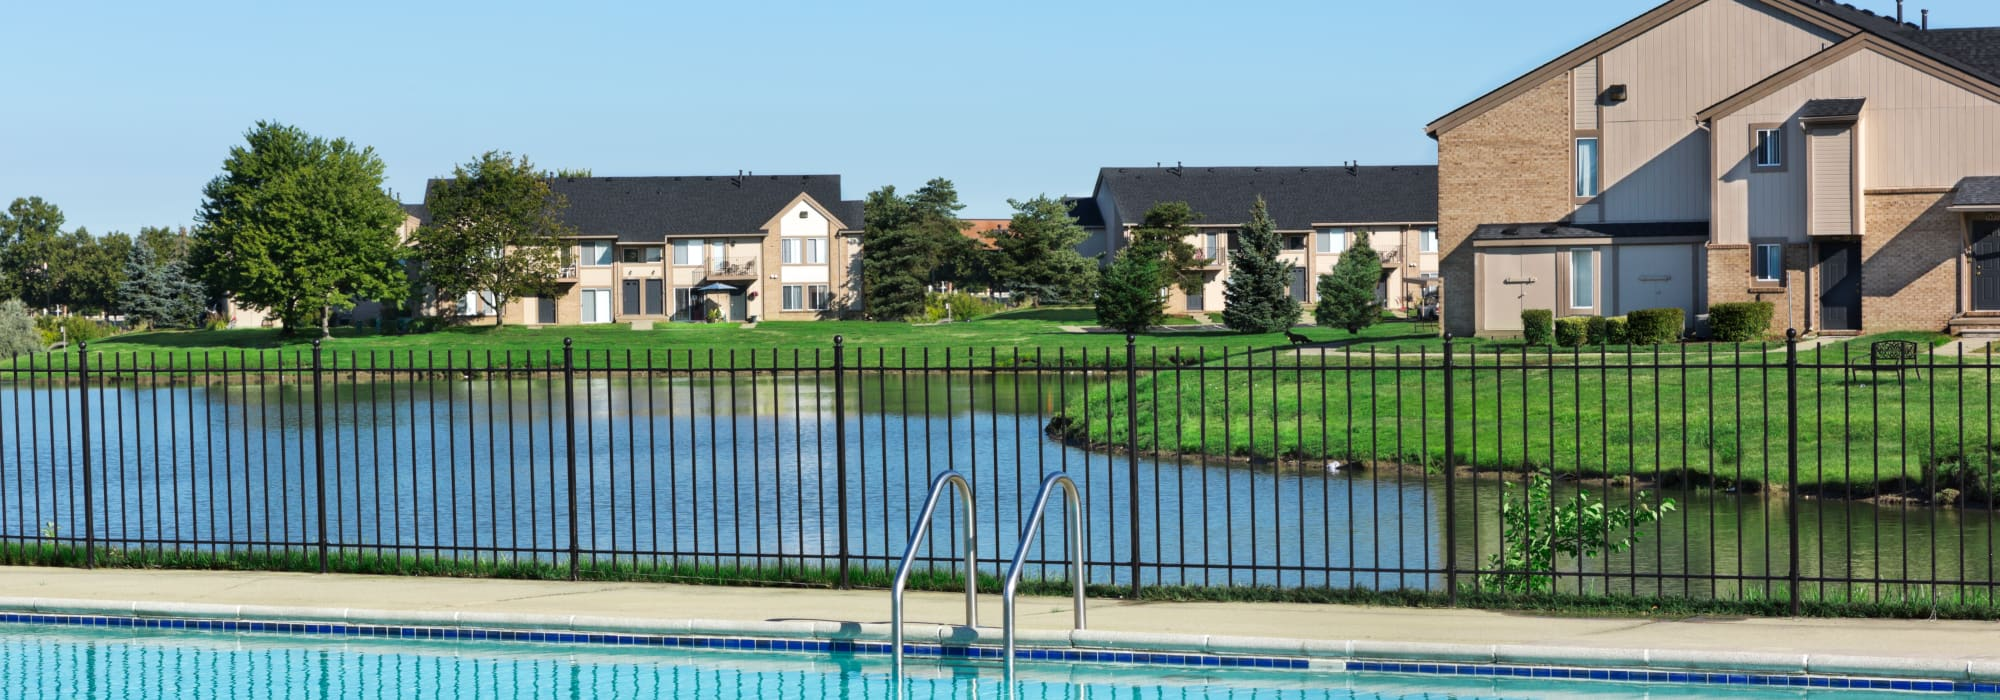 Apartments at Lakeside Terraces in Sterling Heights, Michigan